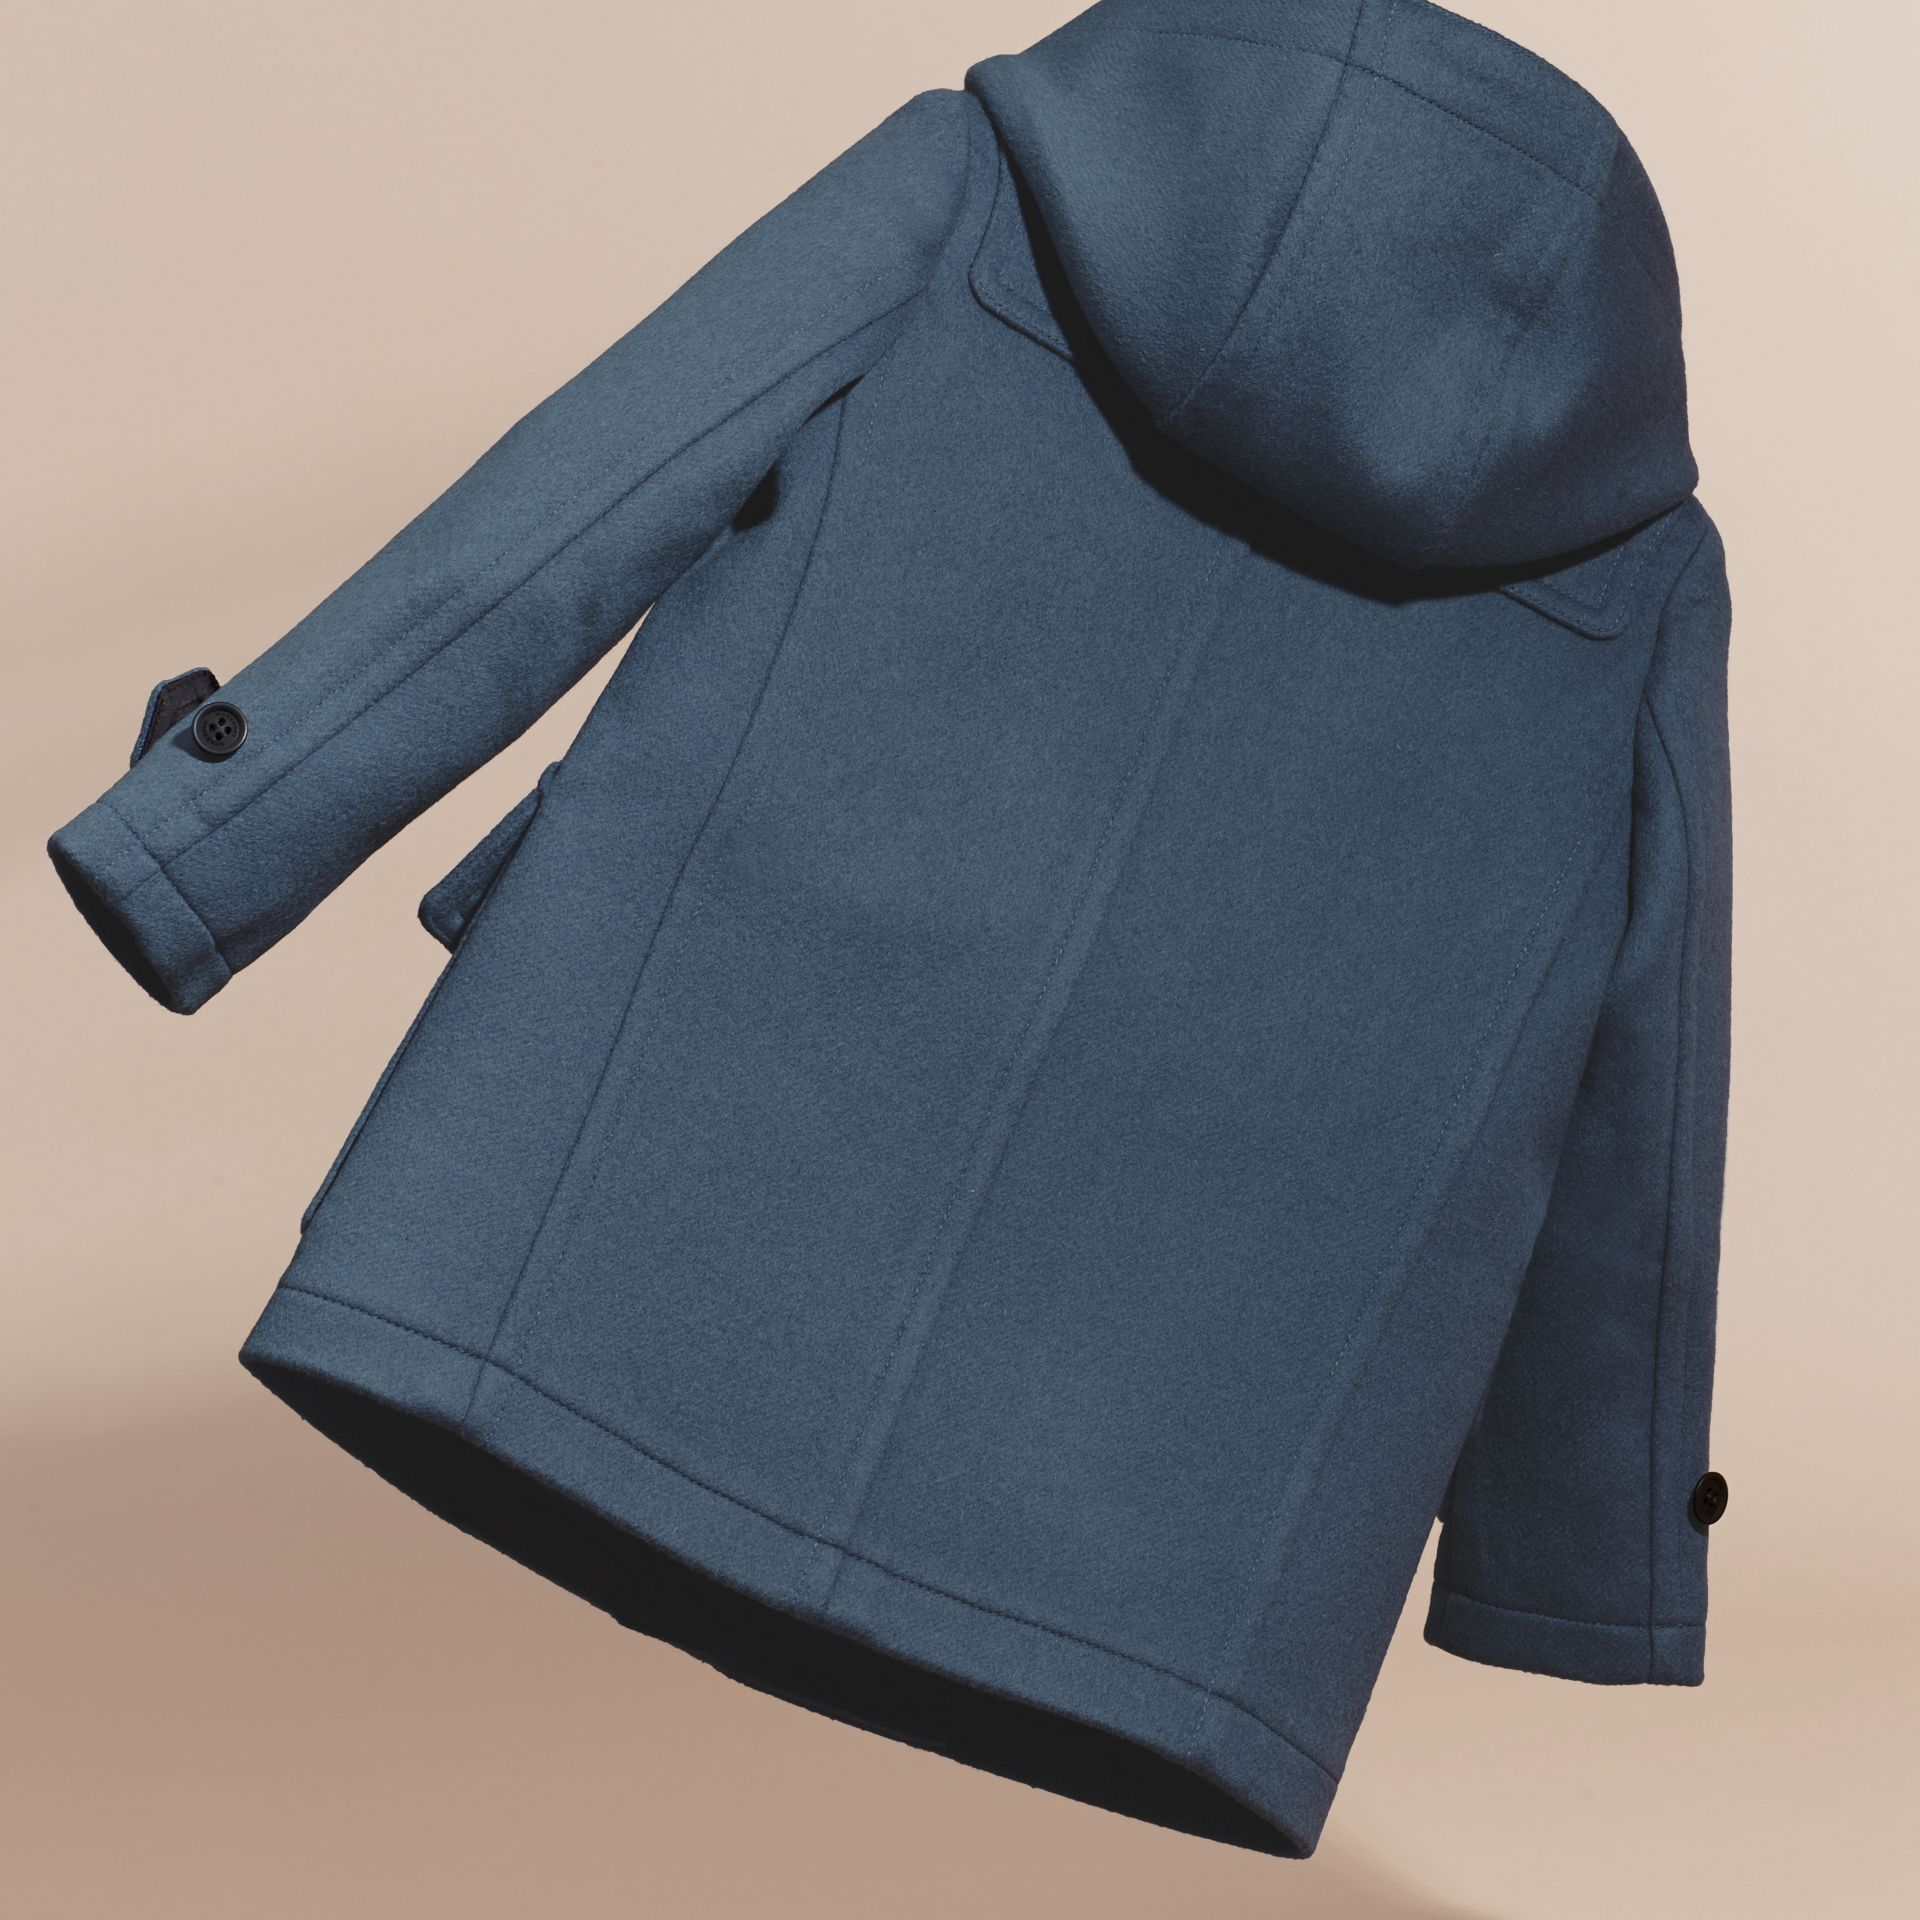 Steel blue Wool Duffle Coat with Check-lined Hood Steel Blue - gallery image 4